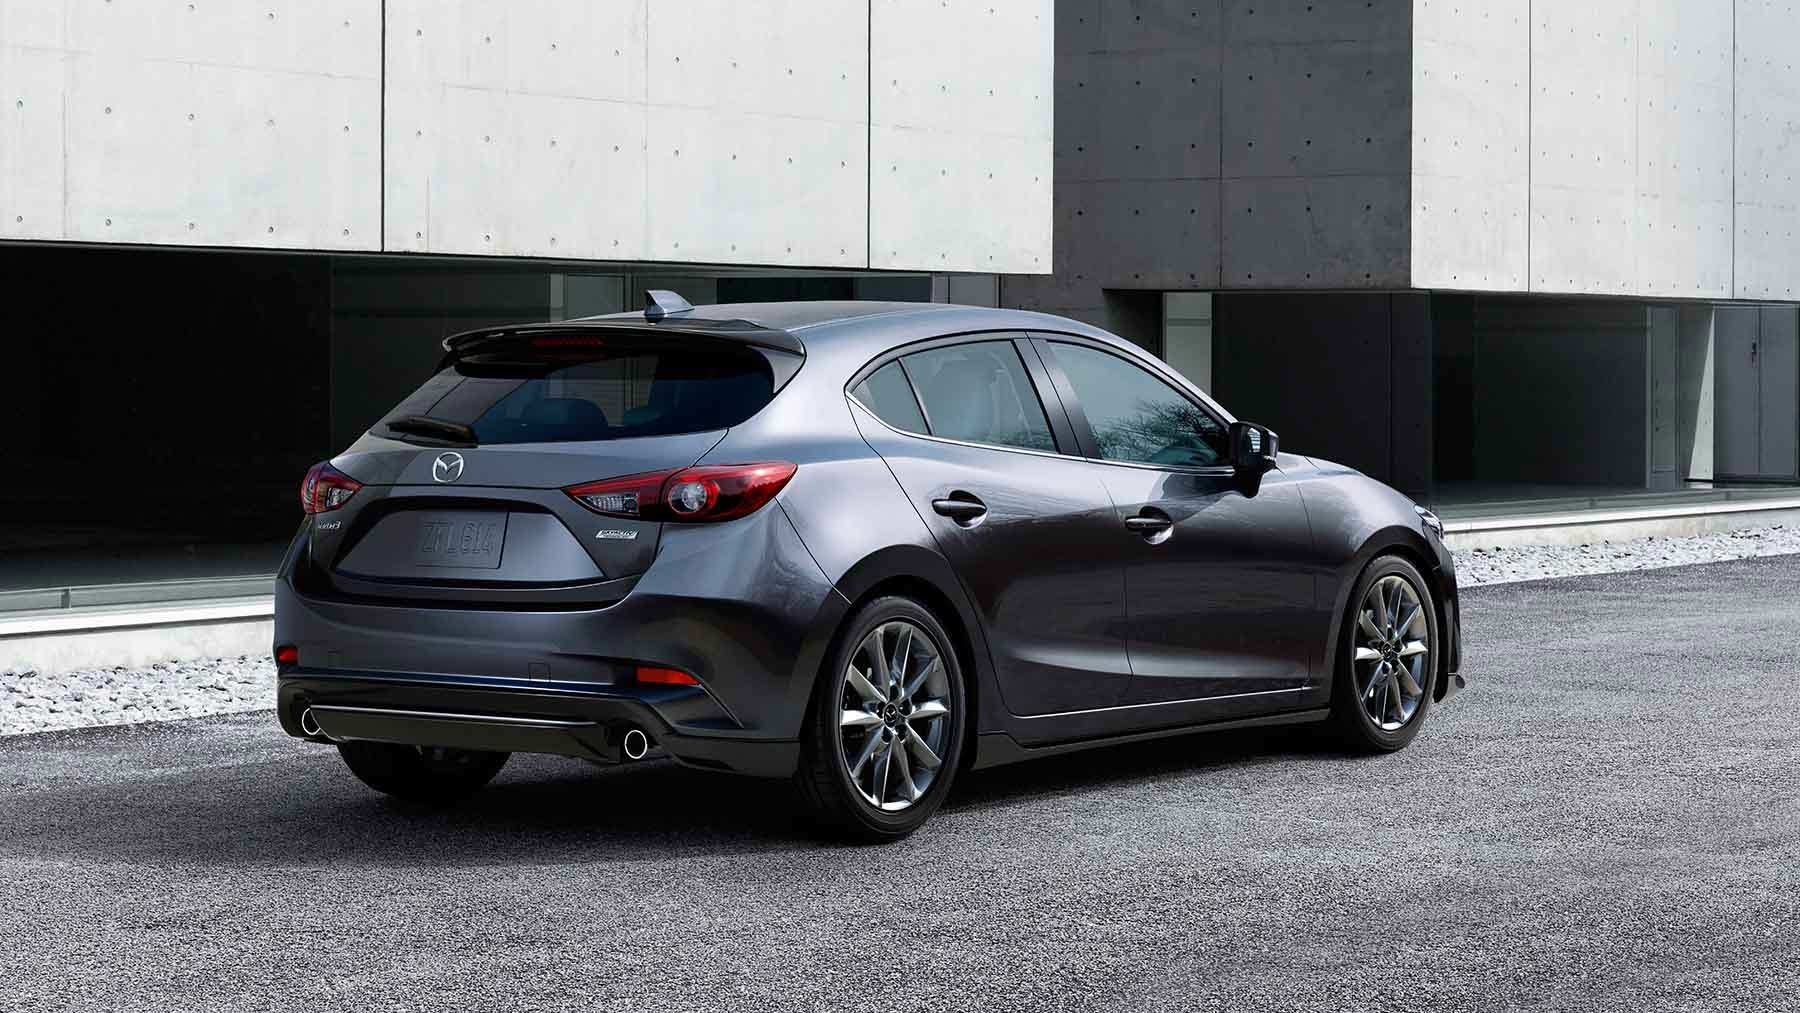 The 5-Door 2017 Mazda3 Hatchback